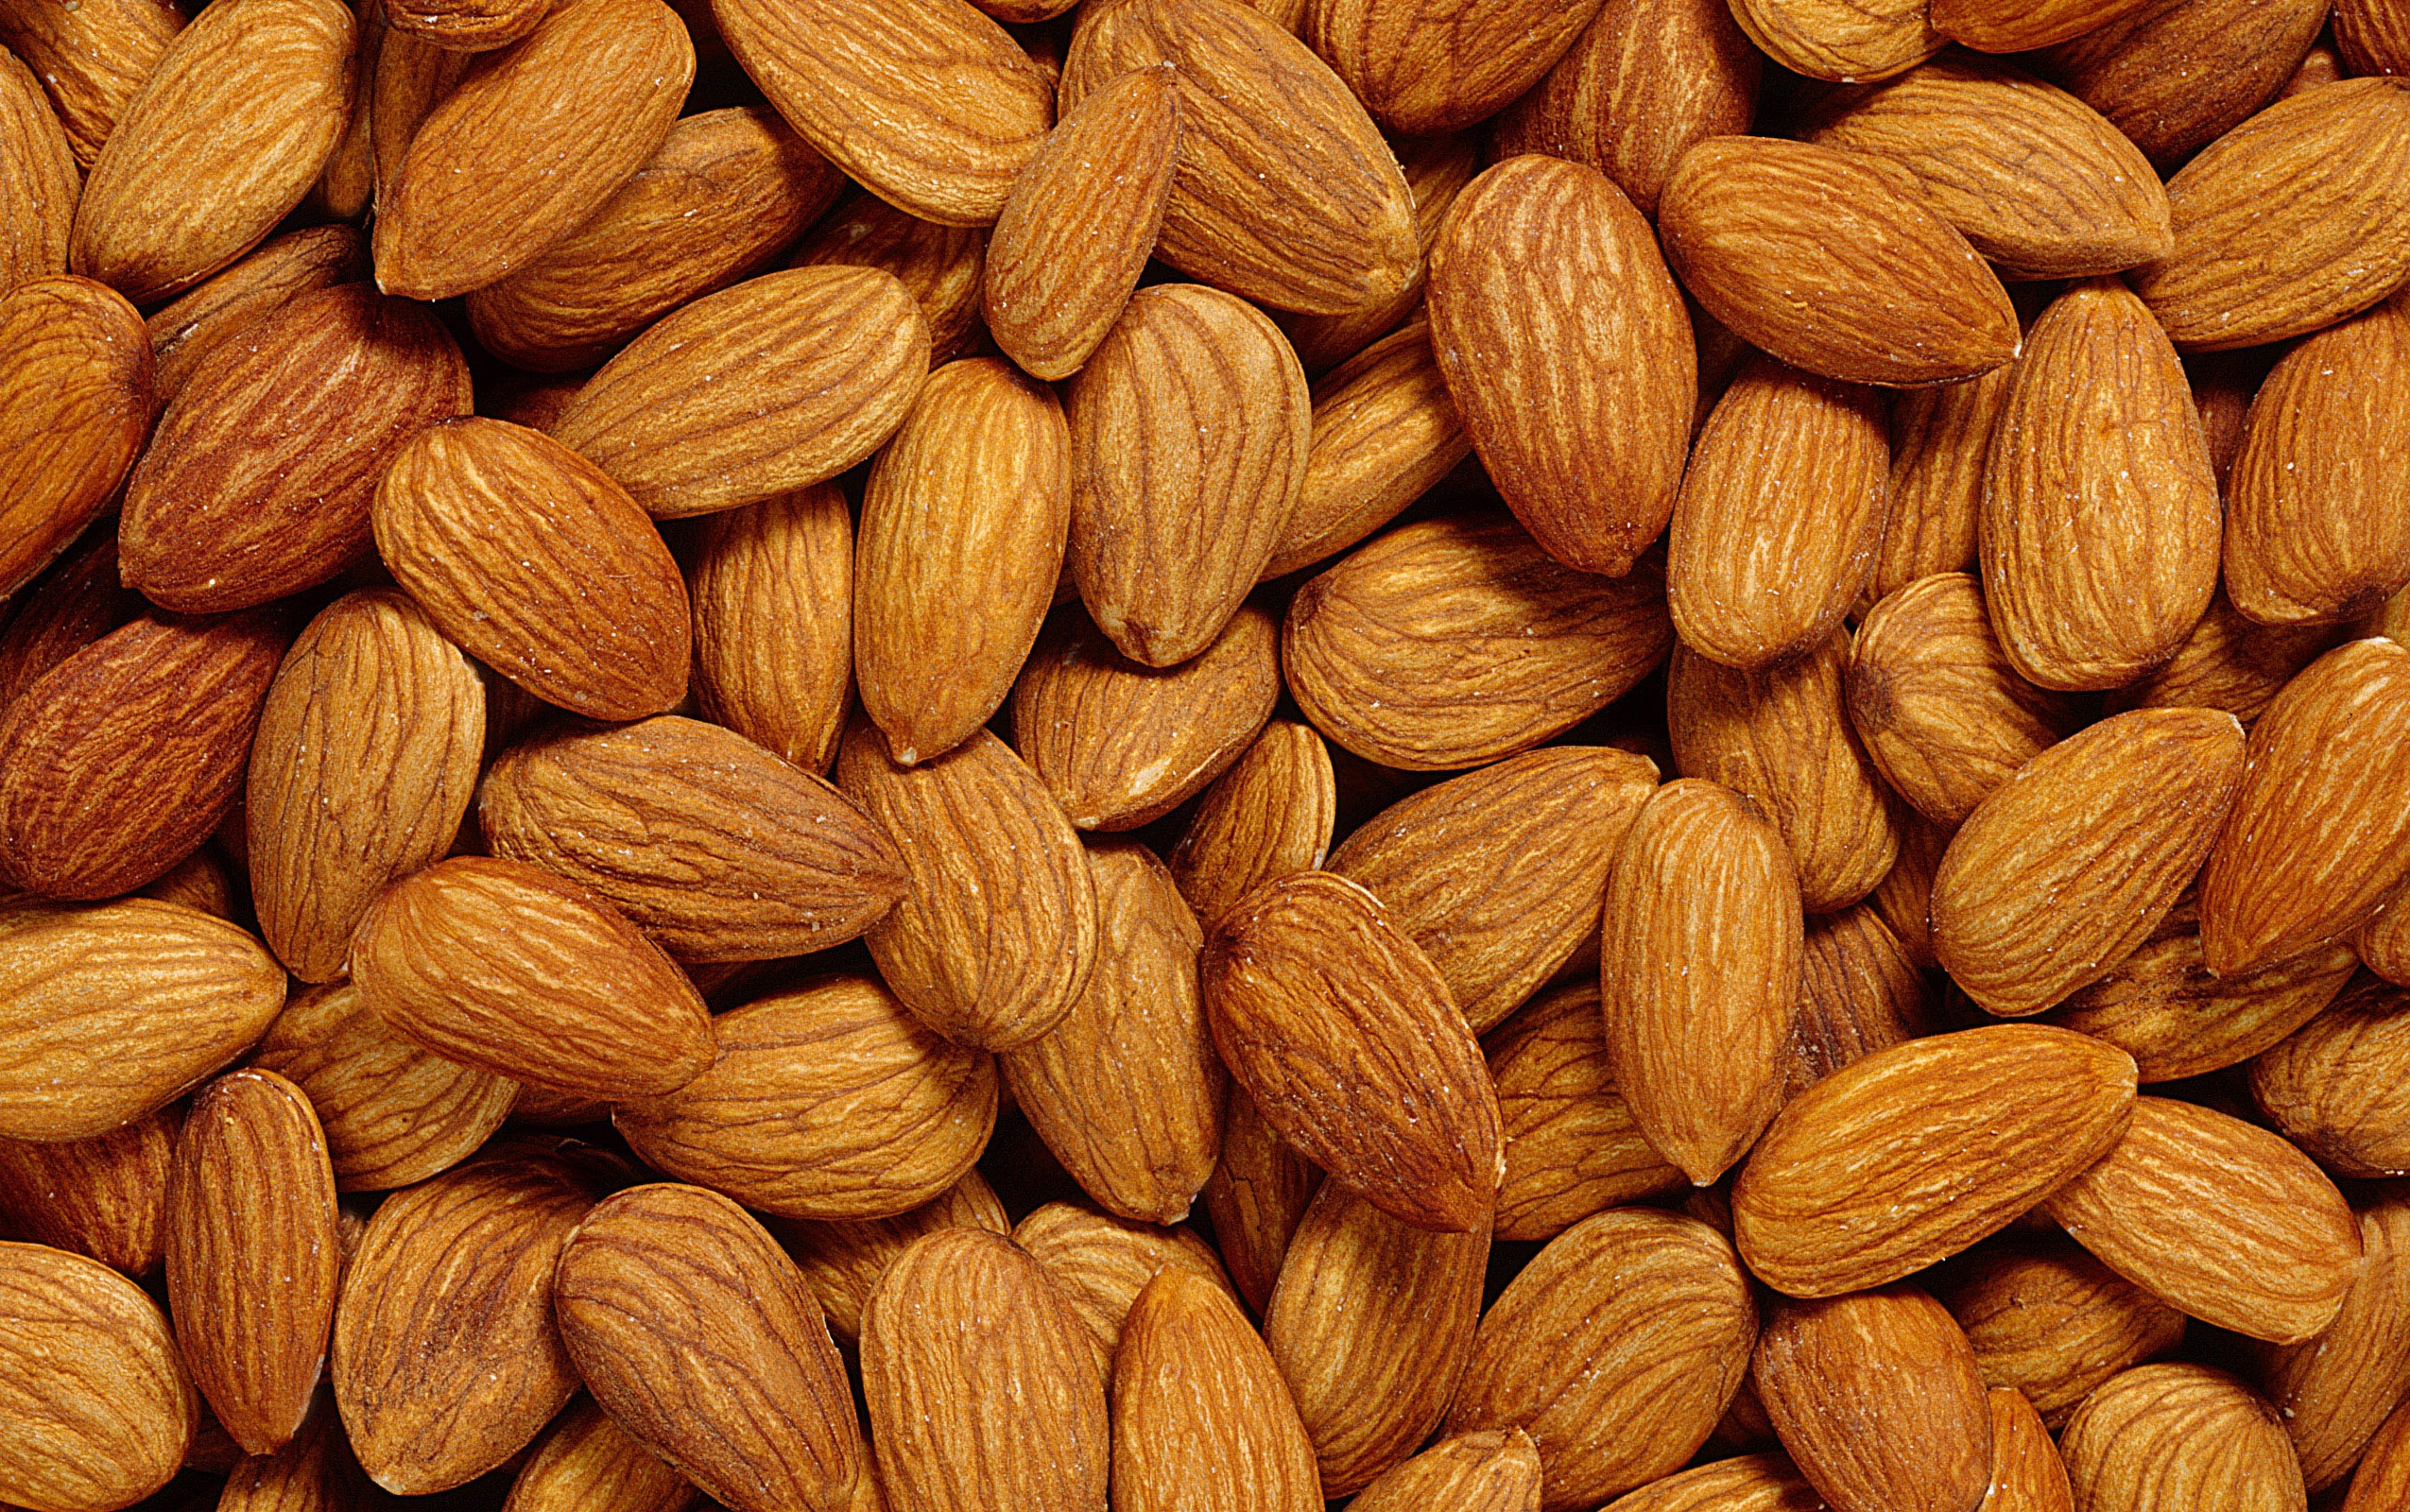 Almond Hd Wallpapers